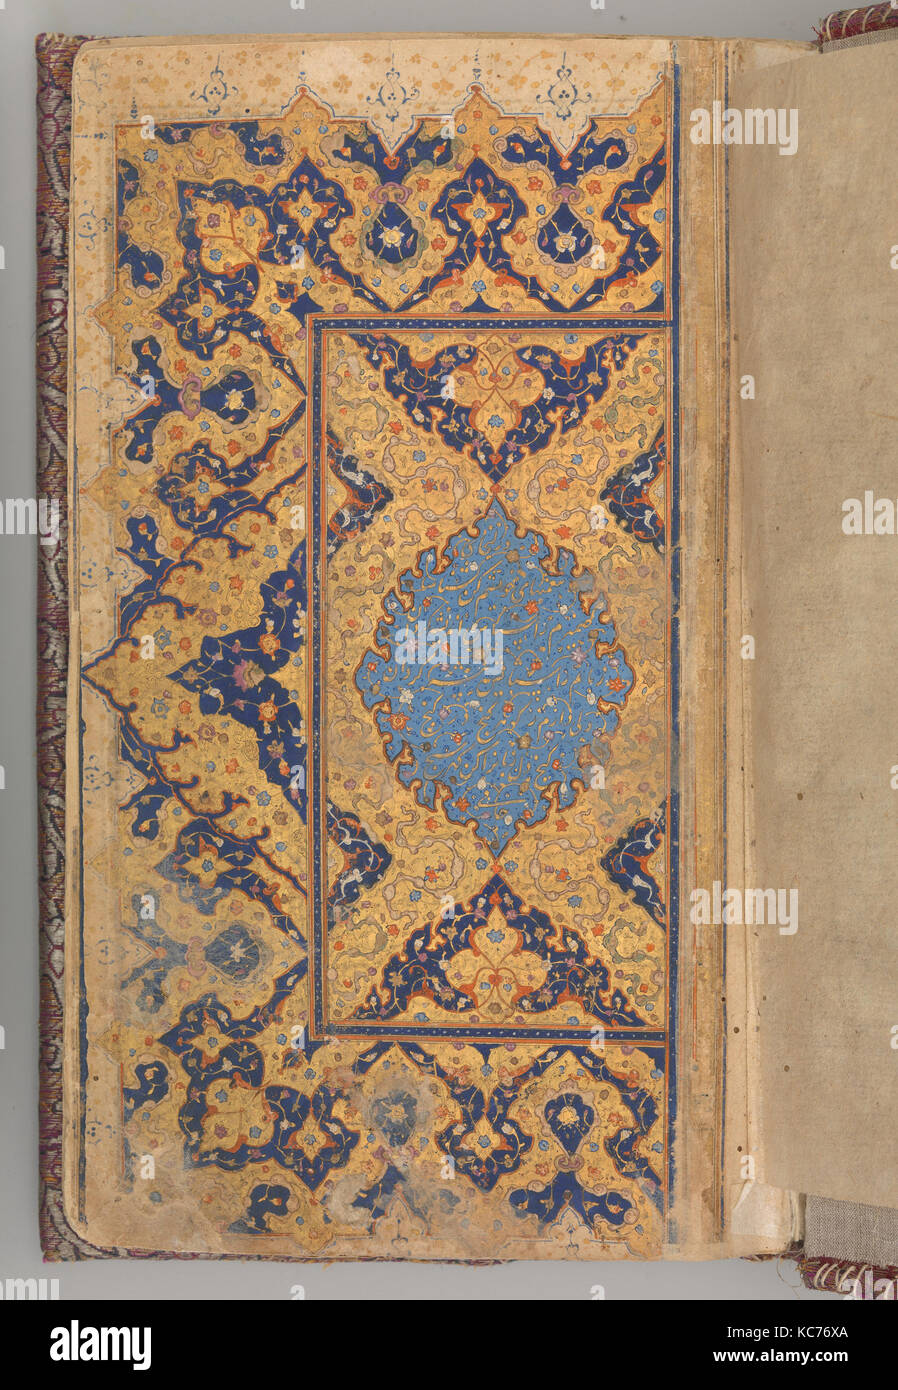 Double Page in Nasta'liq Script from a Yusuf and Zulaikha of Jami, second half 16th century - Stock Image